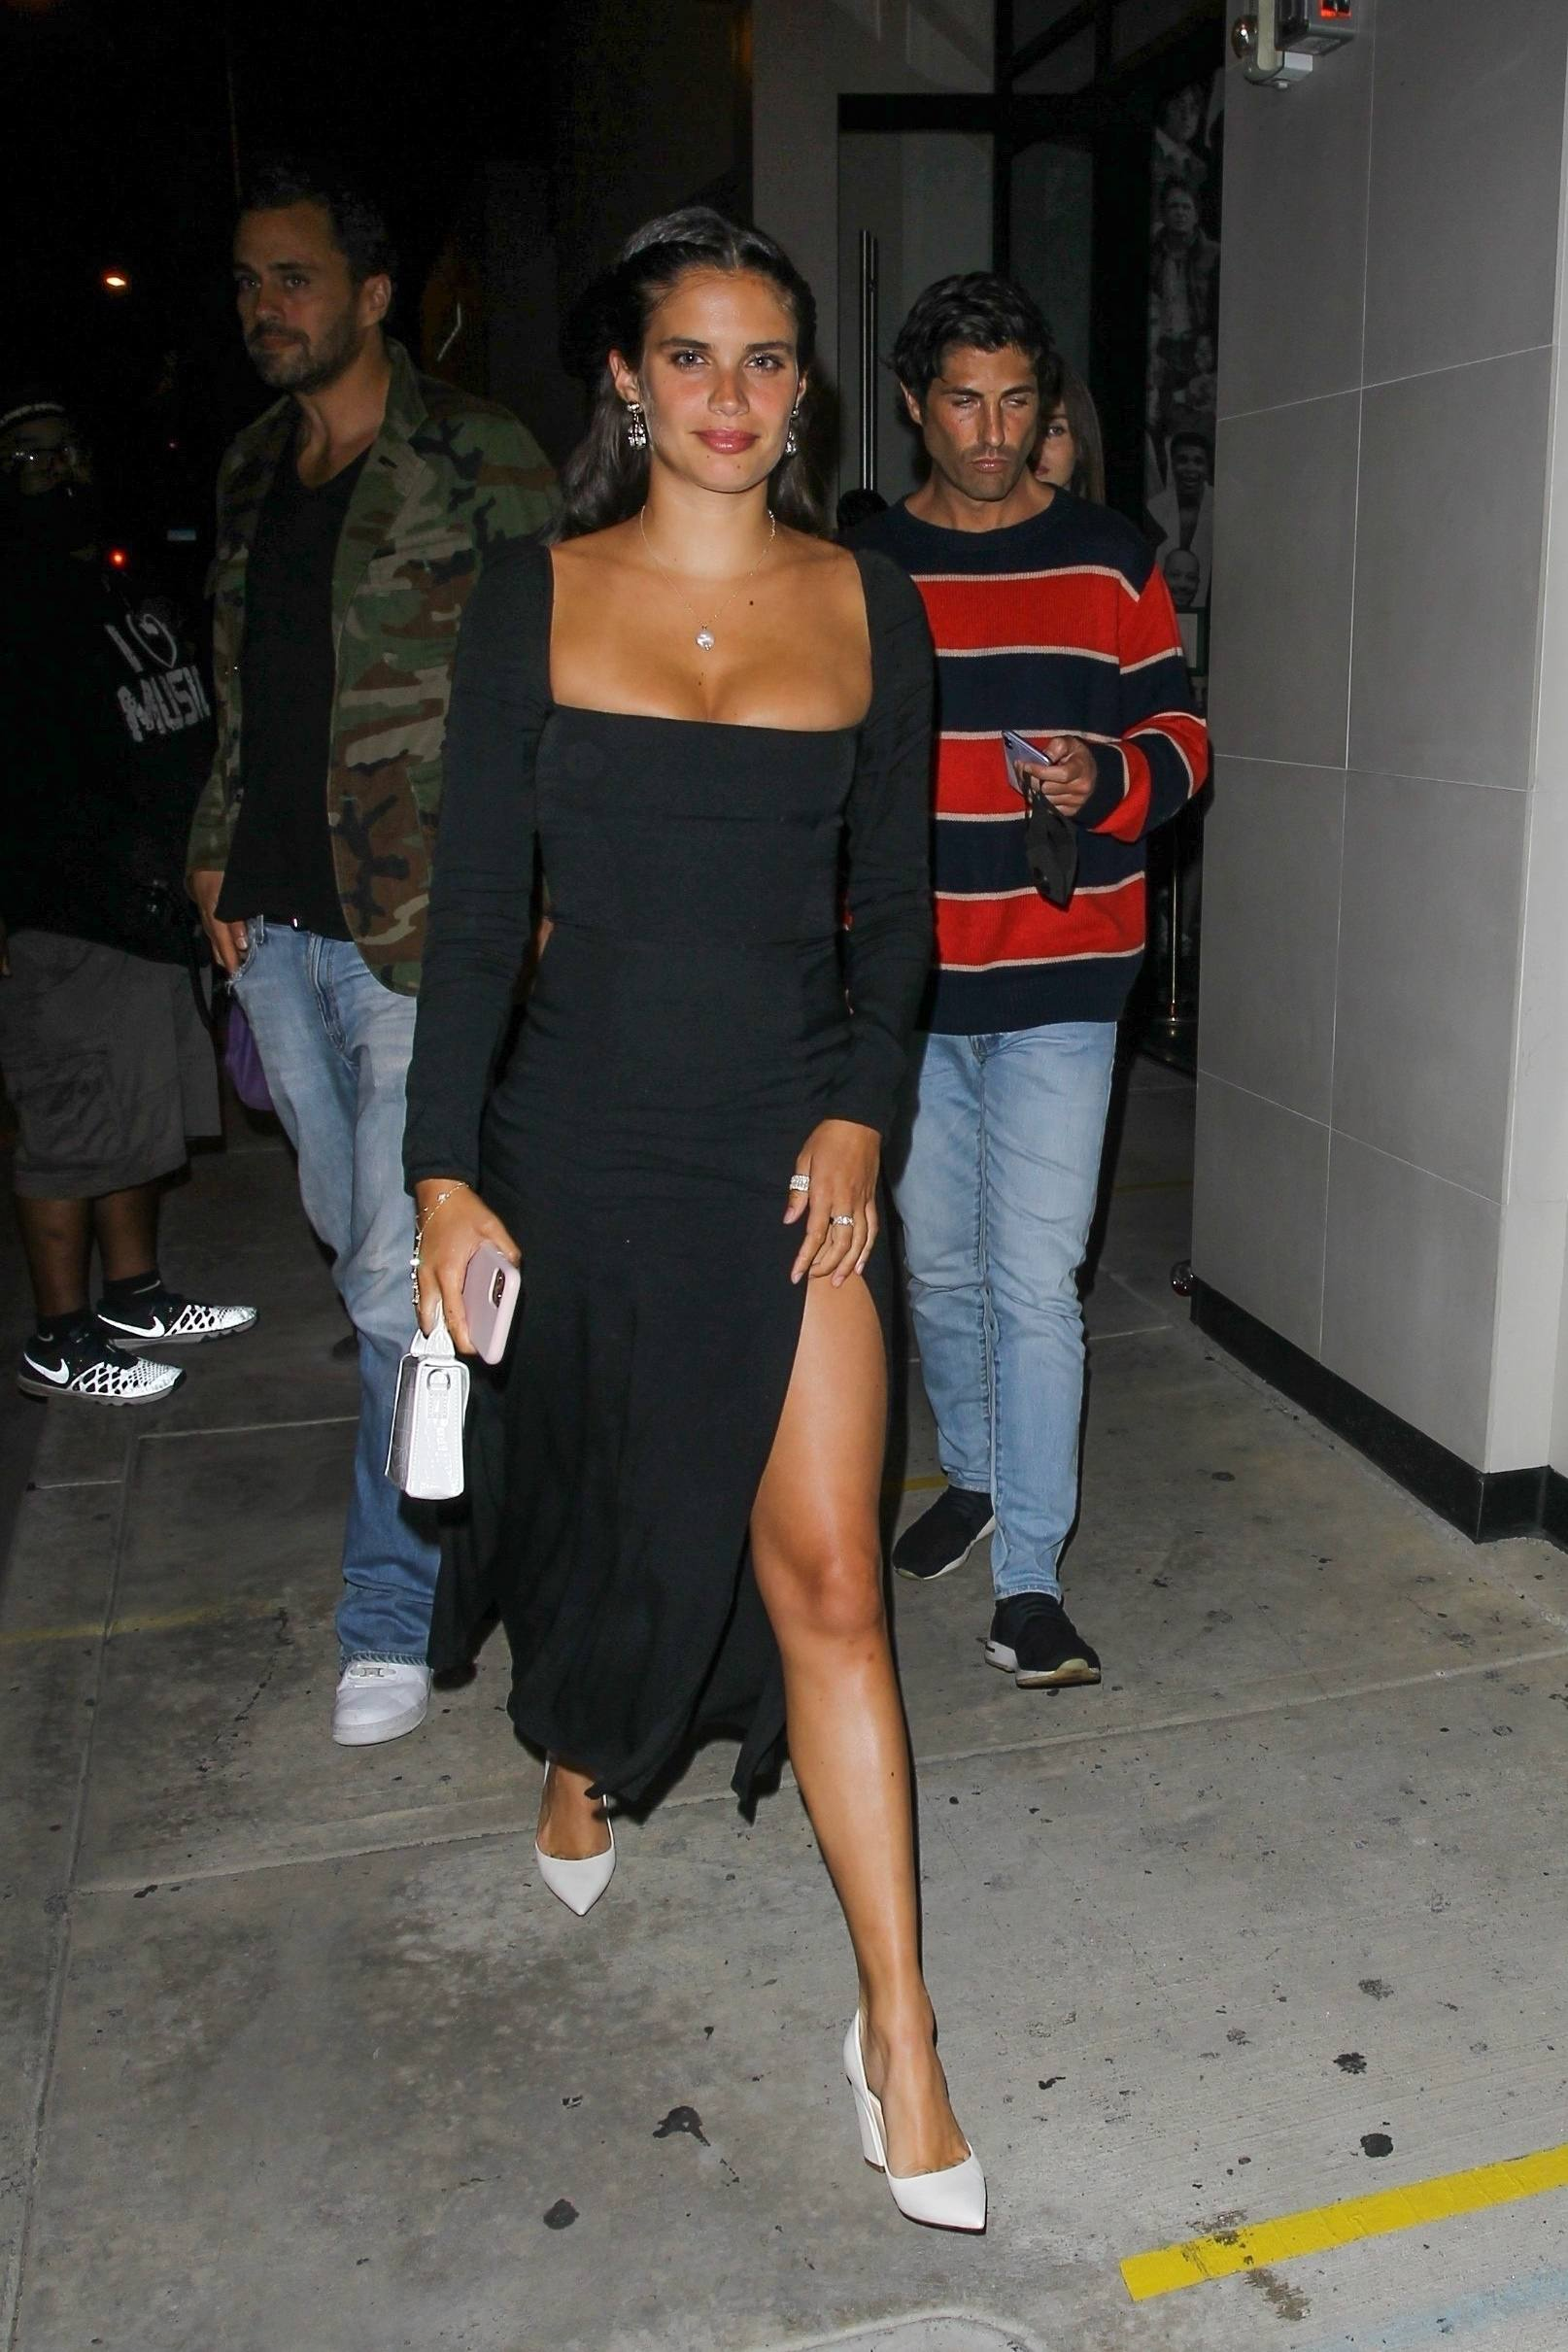 Sara Sampaio – Beautiful In Sexy Black Dress At Catch Restaurant In West Hollywood 0007